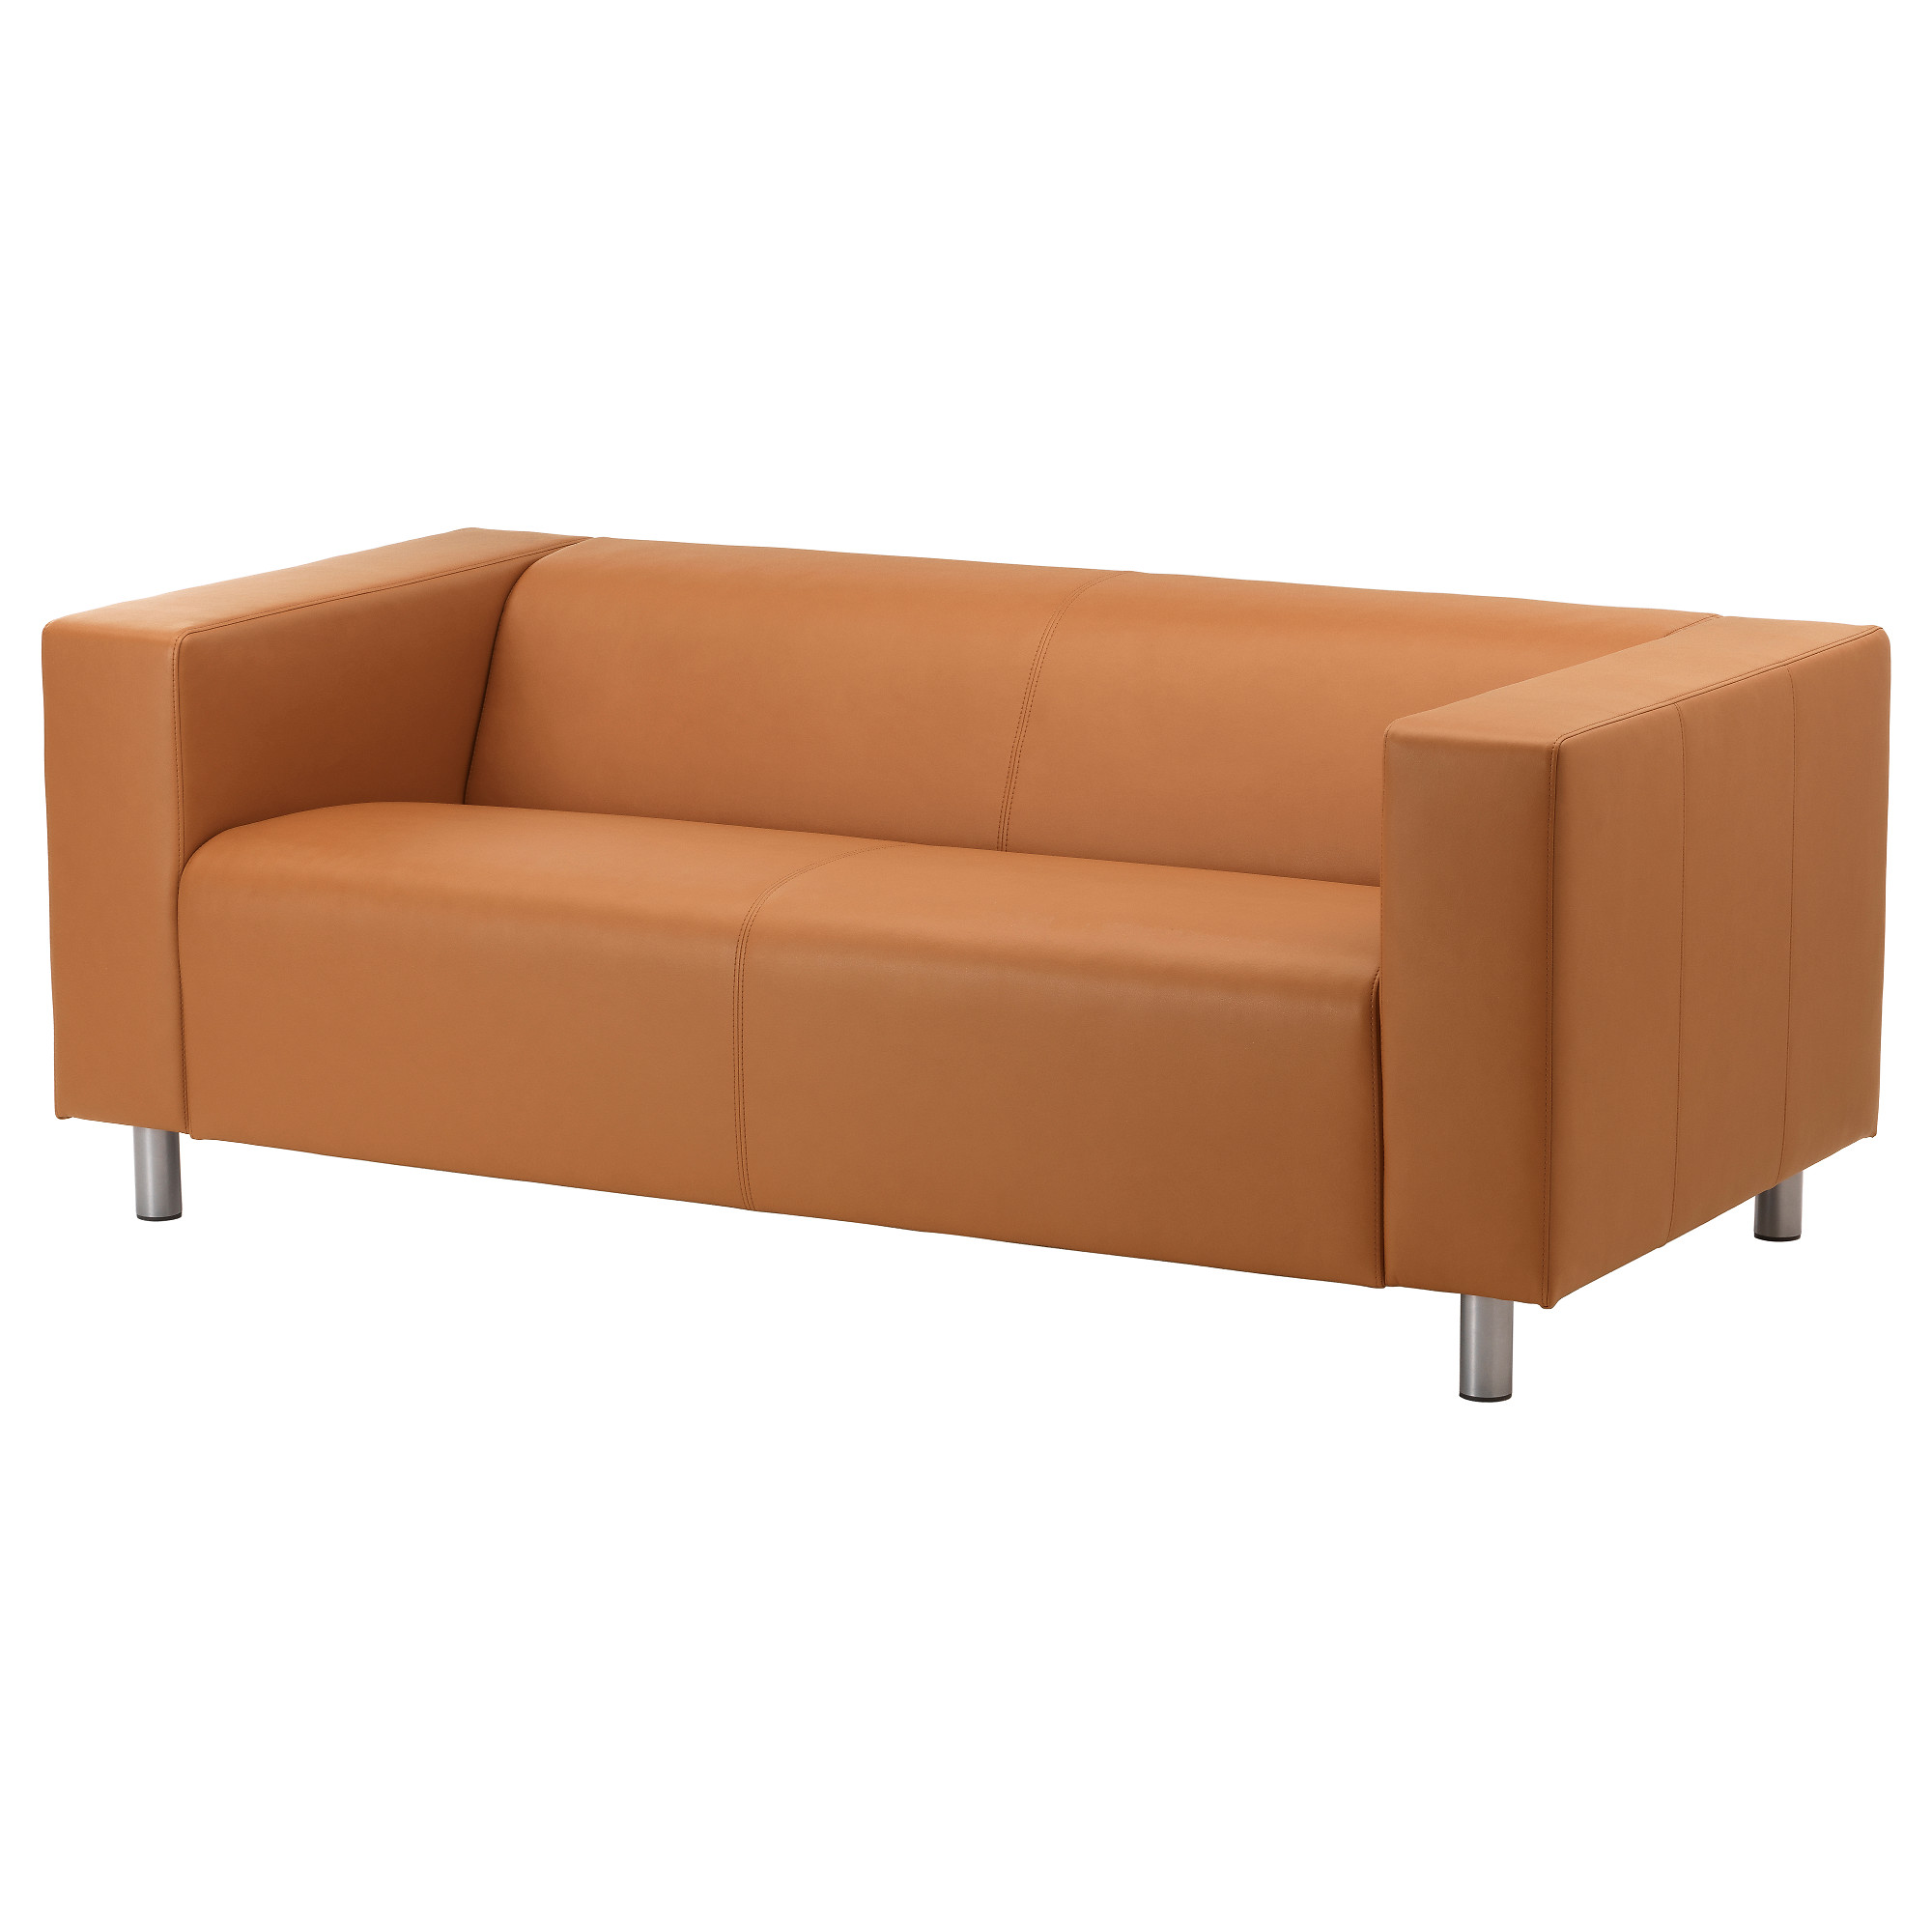 contemporary leather sofa sleeper. klippan loveseat, kimstad light brown width: 69 5/8 \ contemporary leather sofa sleeper